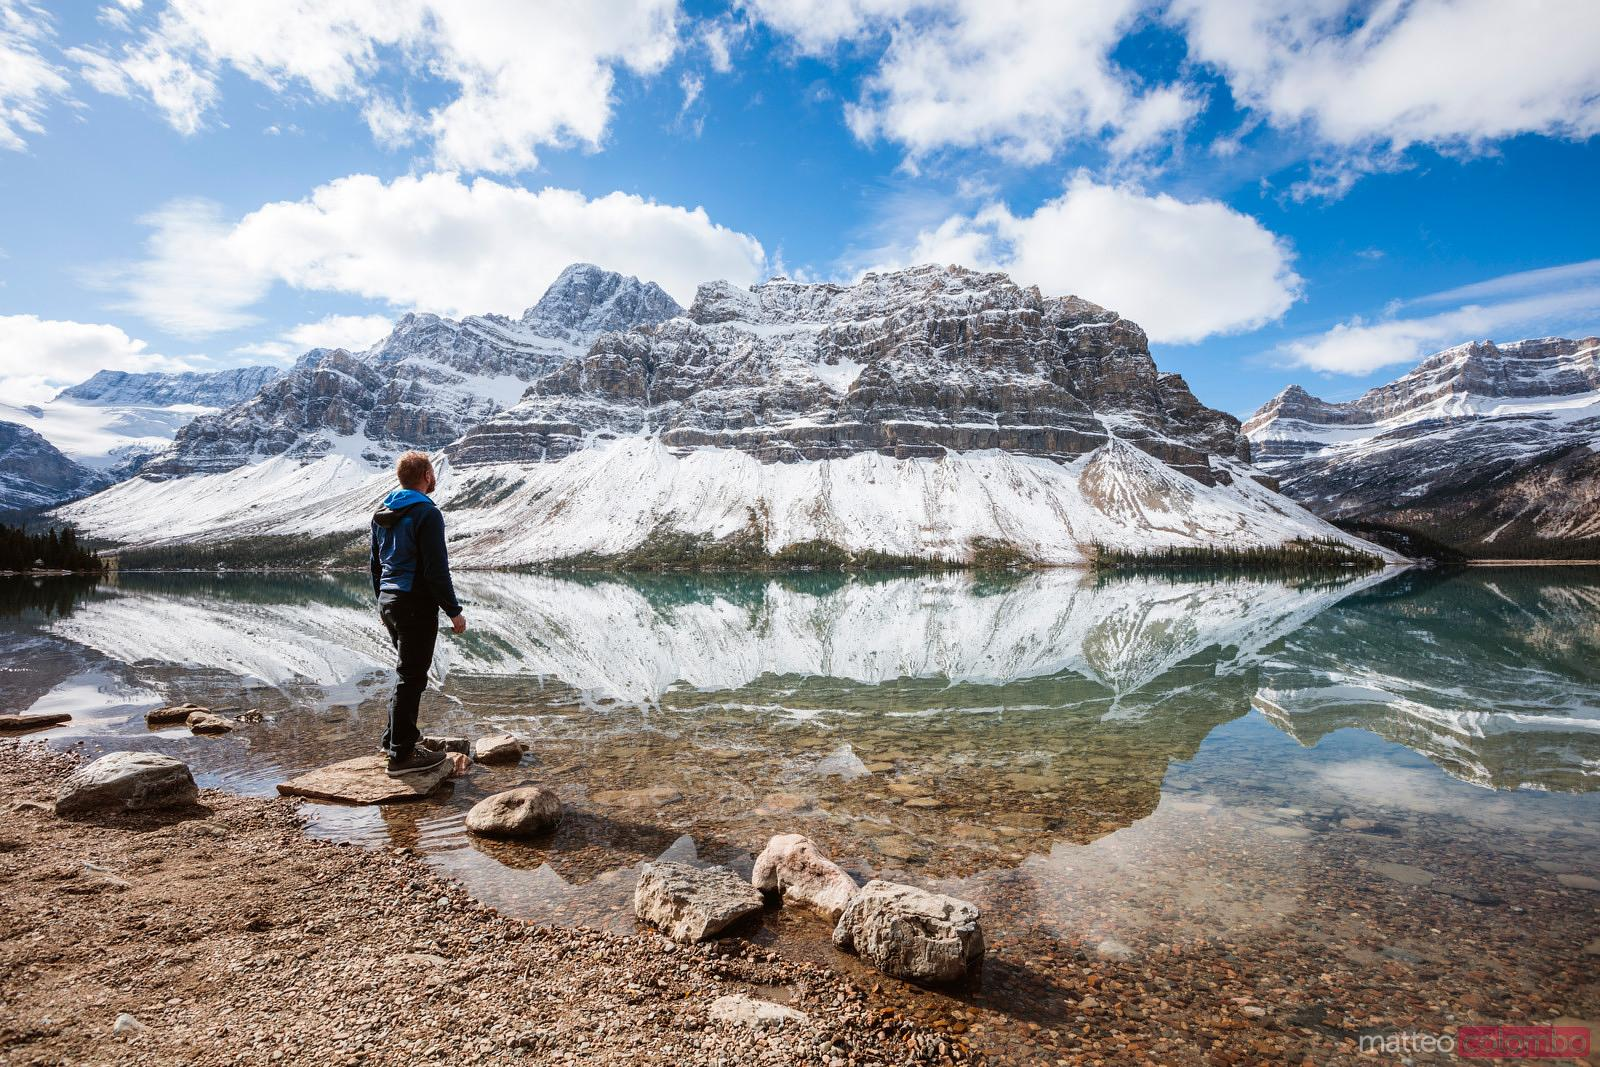 Hiker at Bow lake in autumn, Banff National Park, Canada